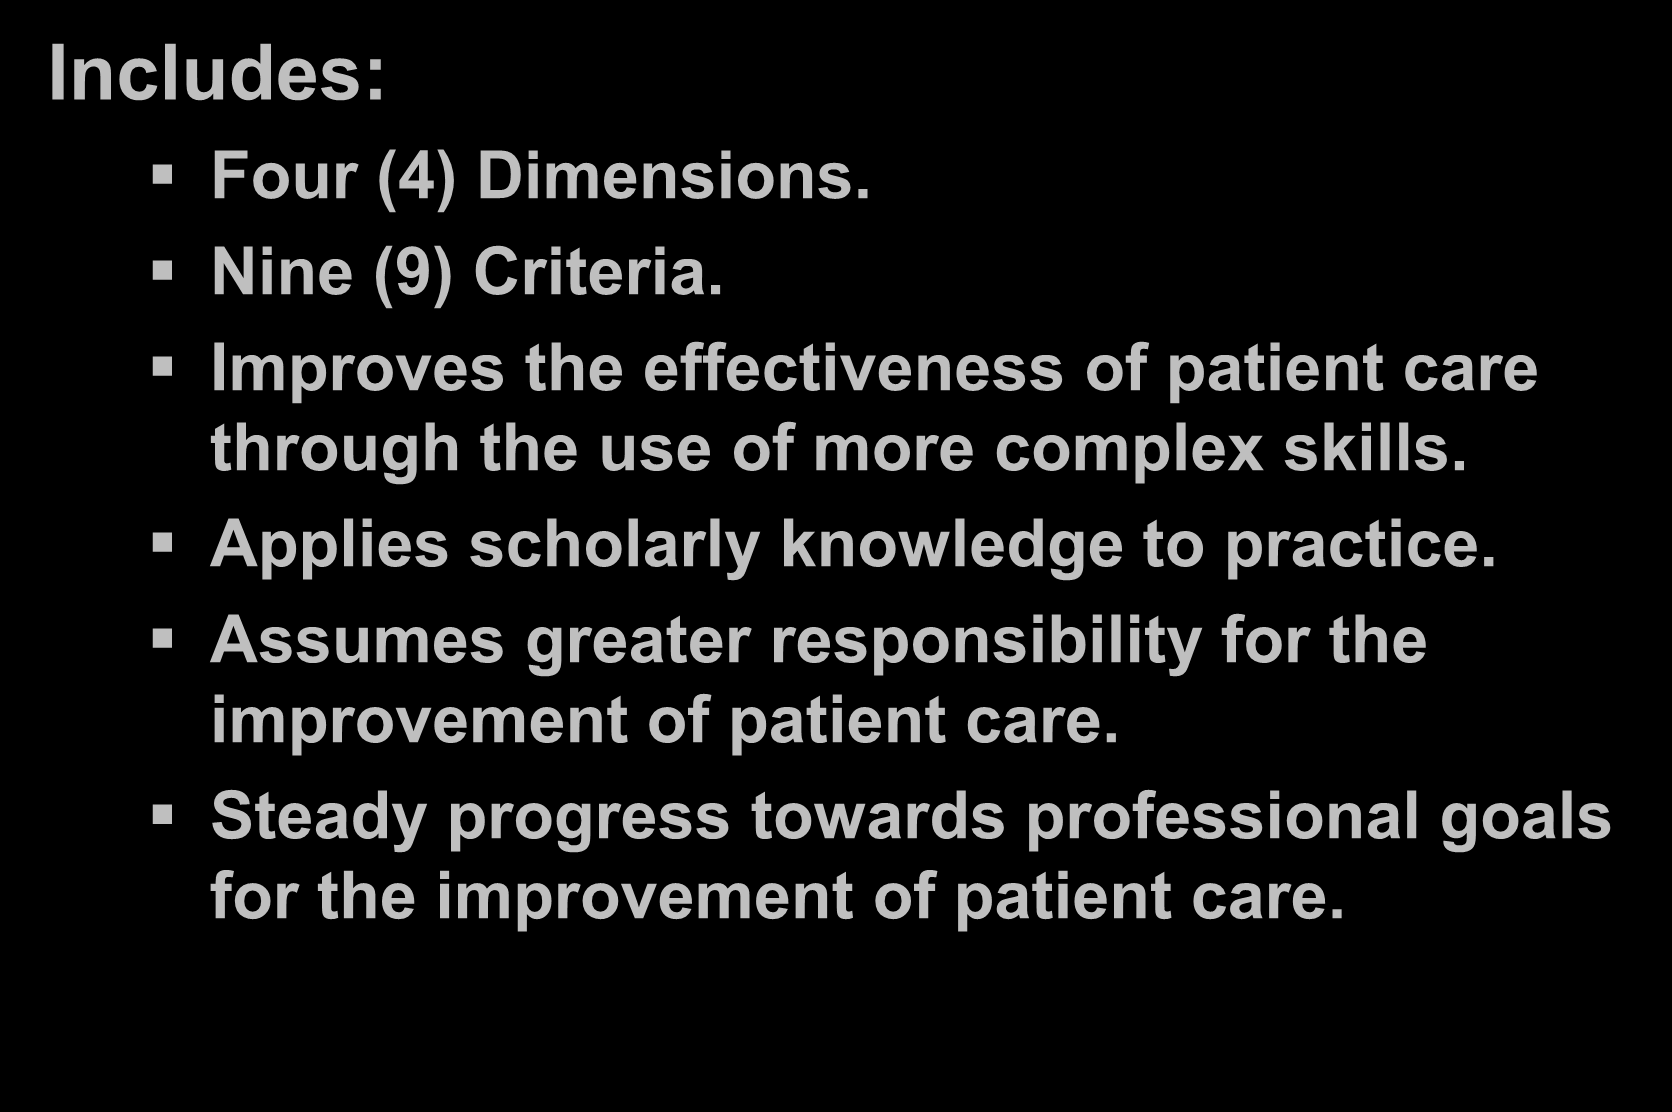 Nurse Qualification Standard Includes: Four (4) Dimensions. Nine (9) Criteria. Improves the effectiveness of patient care through the use of more complex skills.